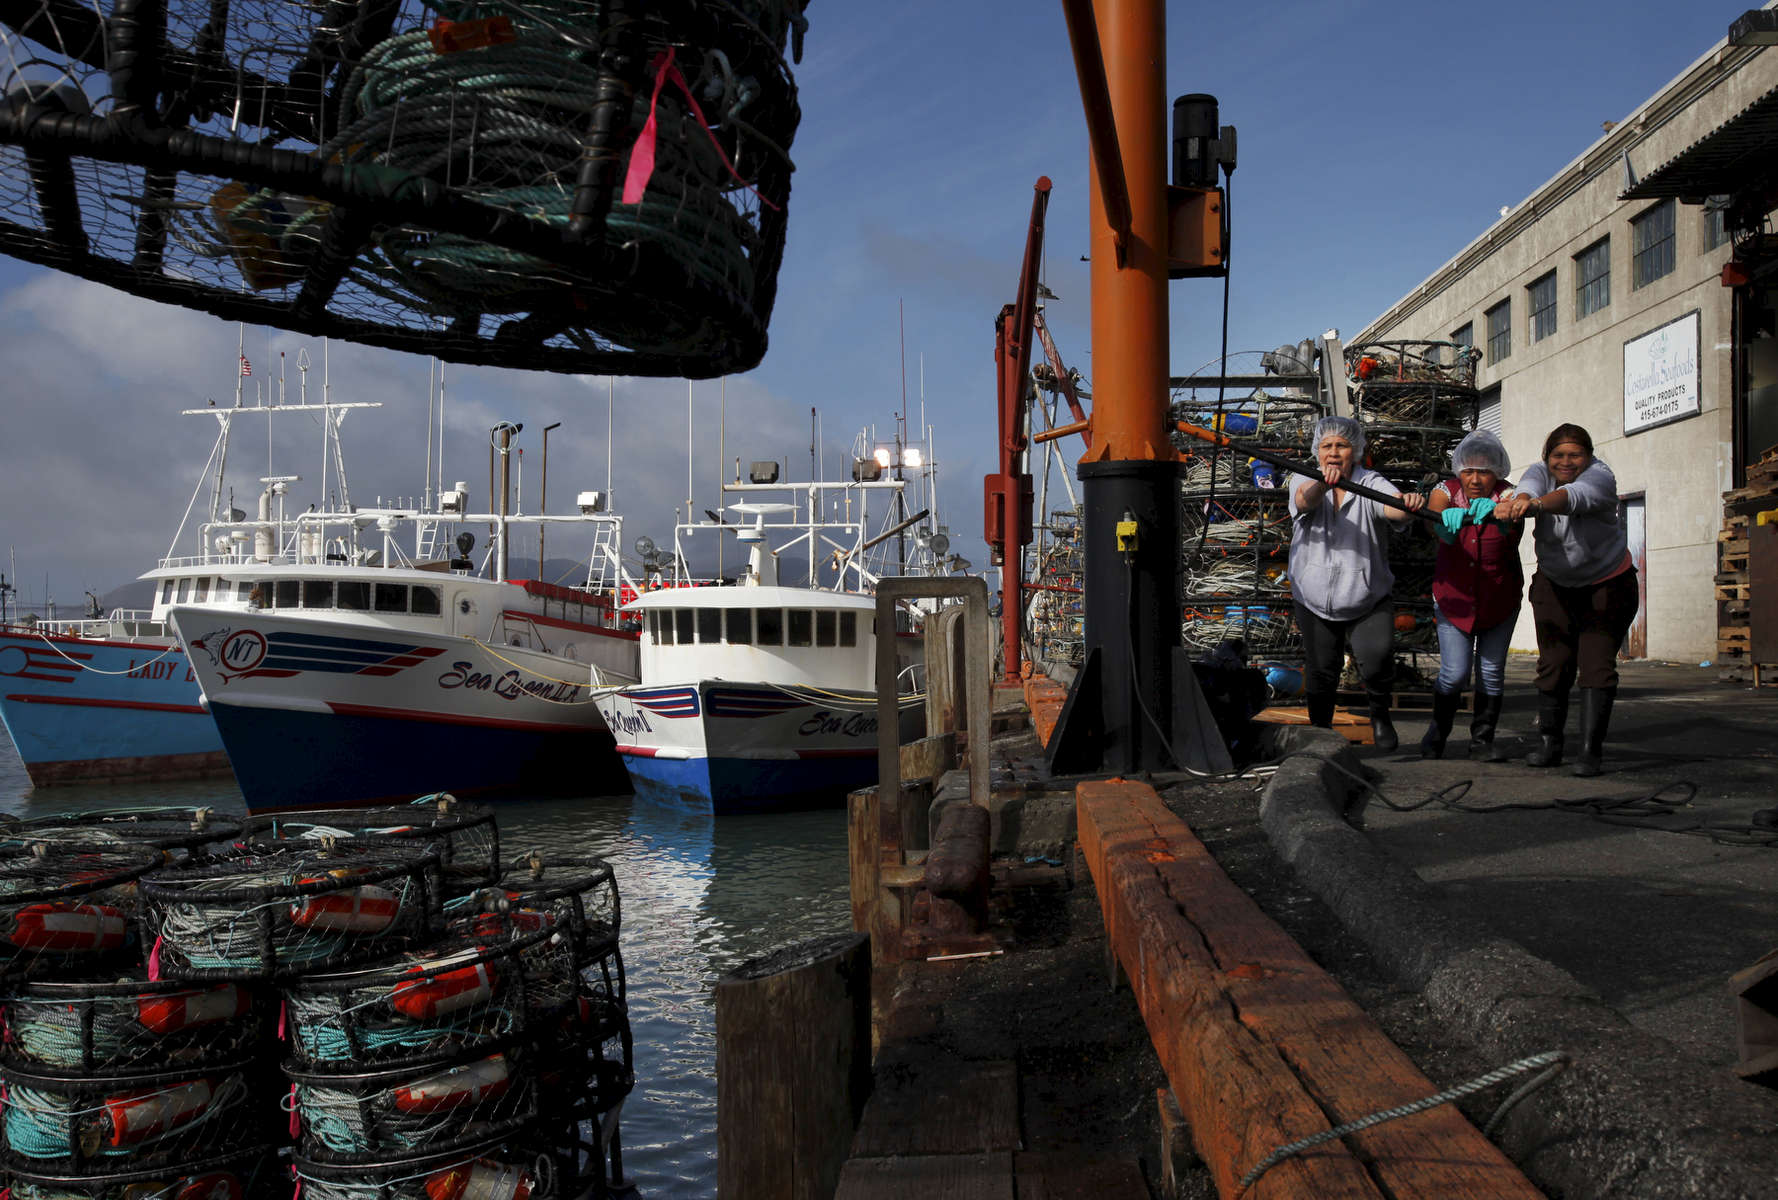 Dock workers, from left, Virginia Flores, Martha Bustamante and Ingrid Orecaba operate a hoist to help the Ingot load up crab traps or {quote}pots{quote} on Pier 45 Nov. 14, 2014 as the crab season starts in San Francisco, Calif.